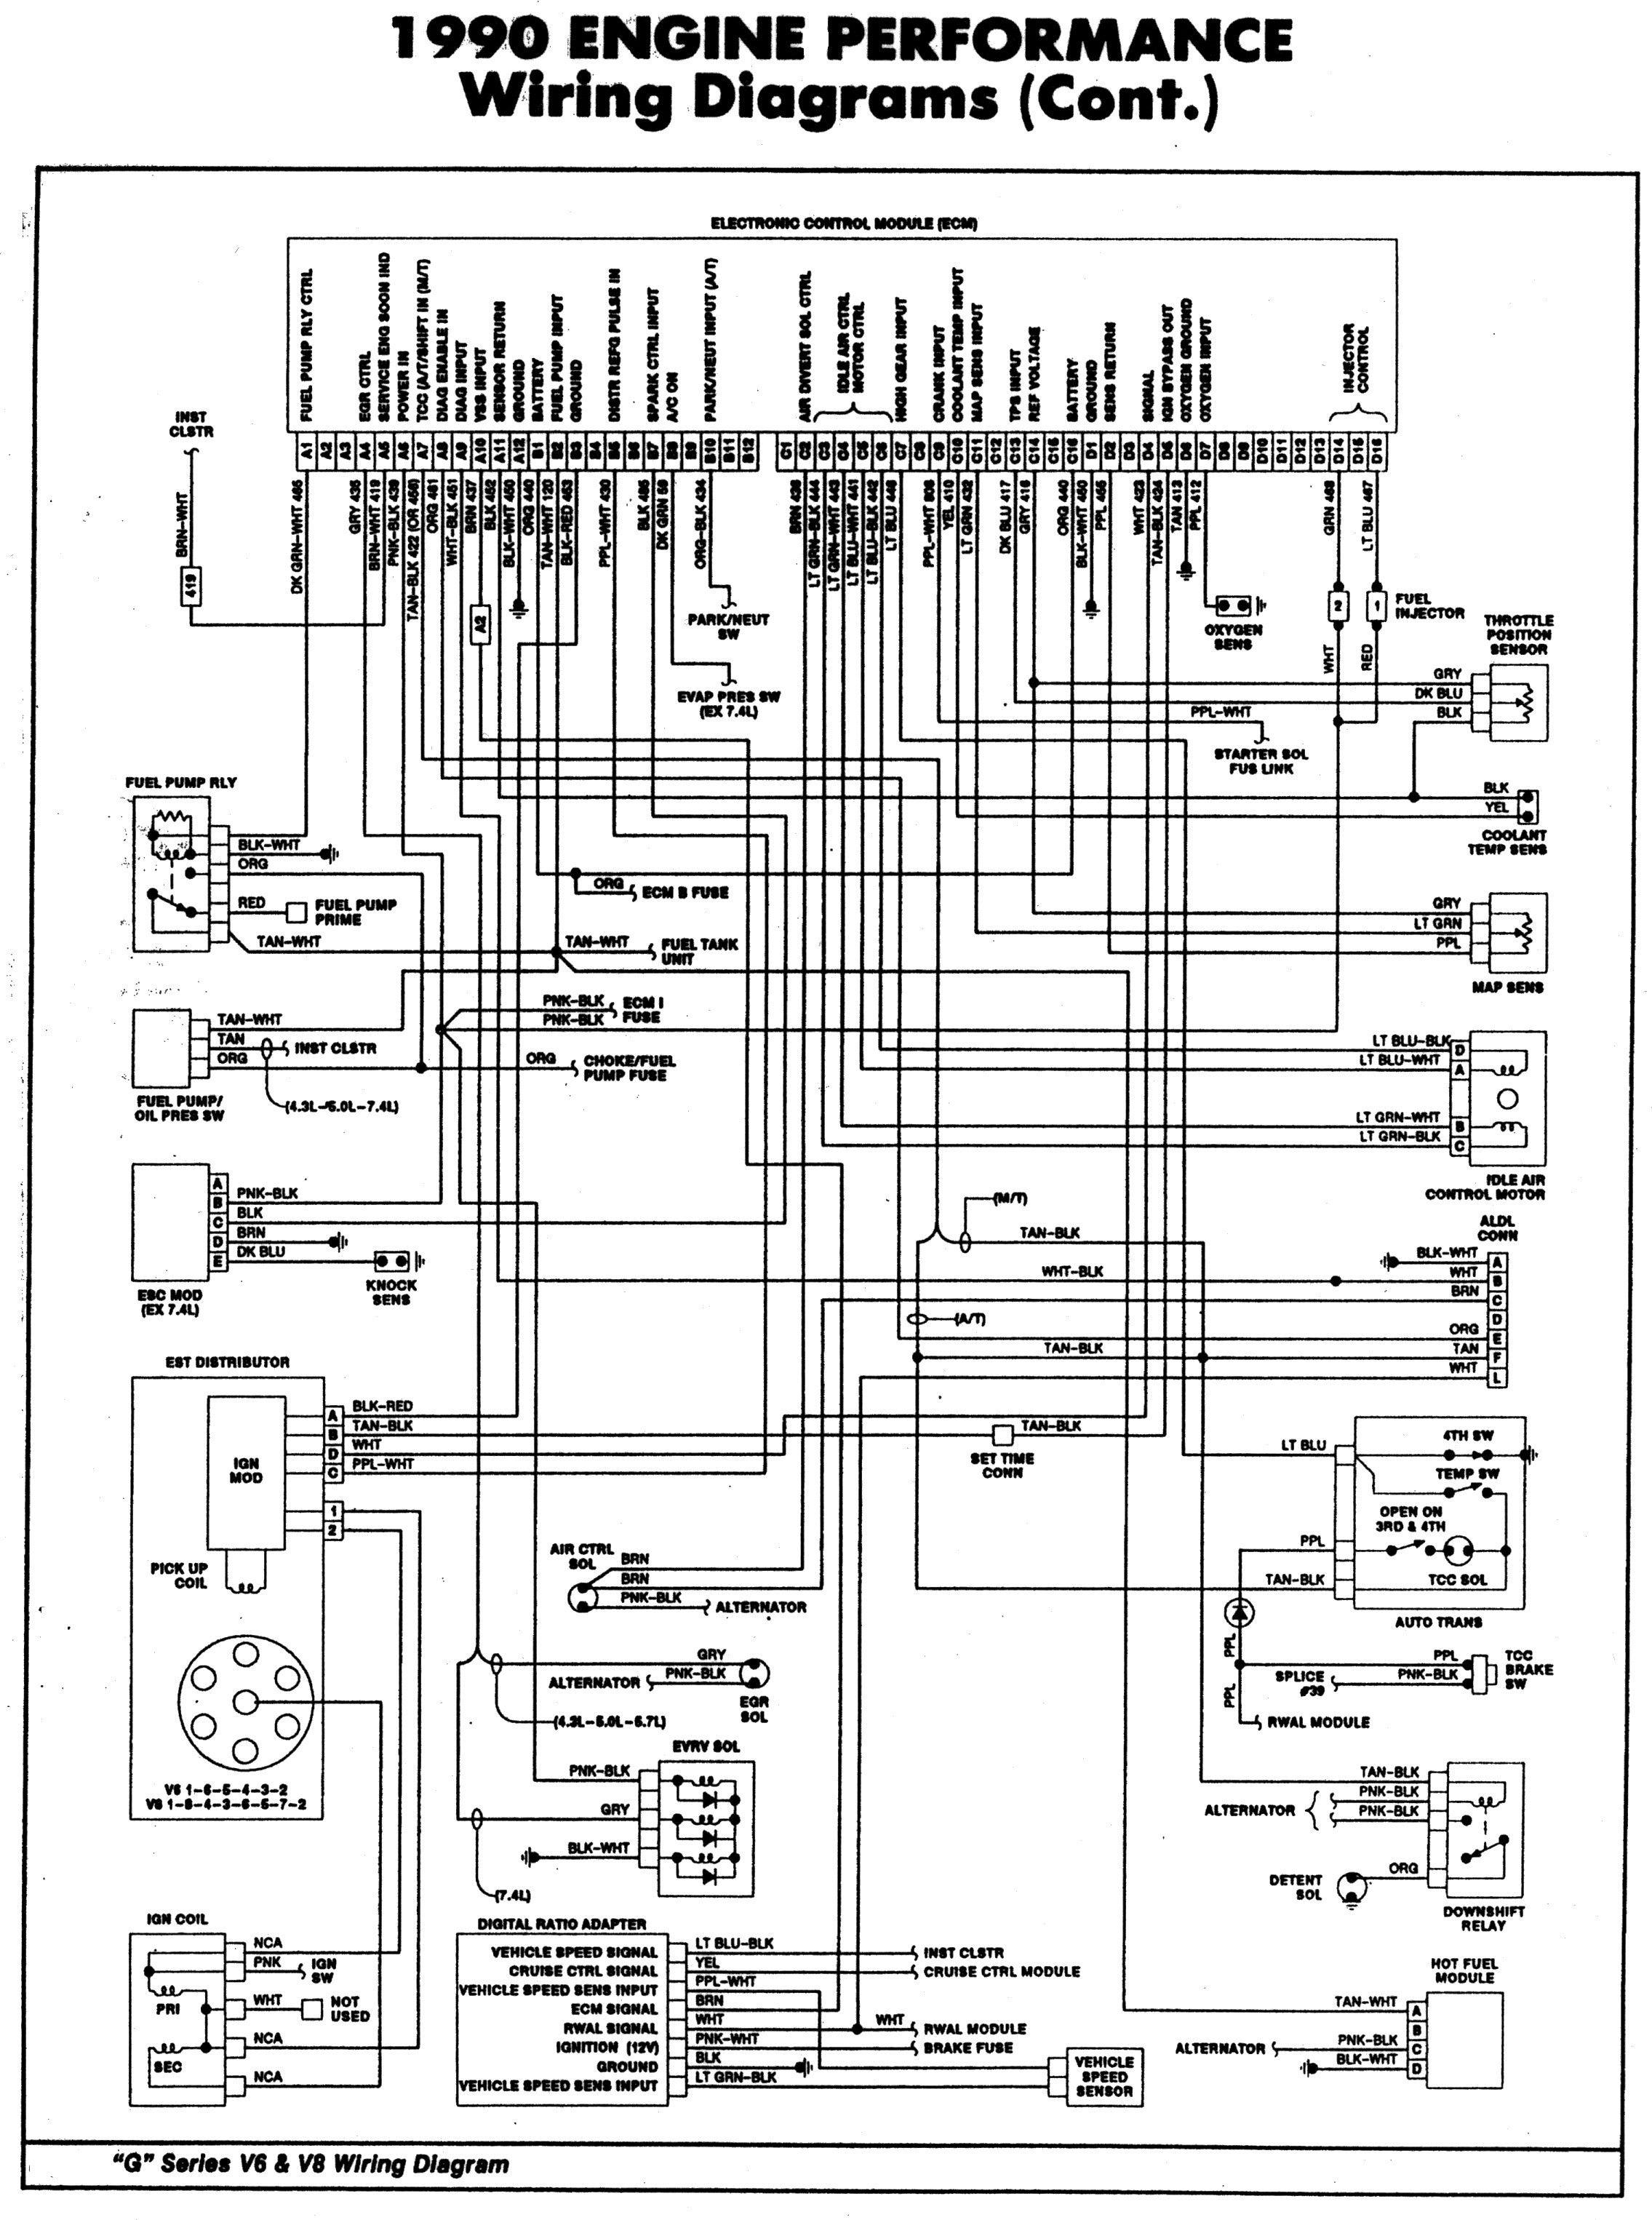 1994 Chevy Truck Wiring Diagram Free Inspirational 2000 Chevrolet - 1994 Chevy Truck Wiring Diagram Free